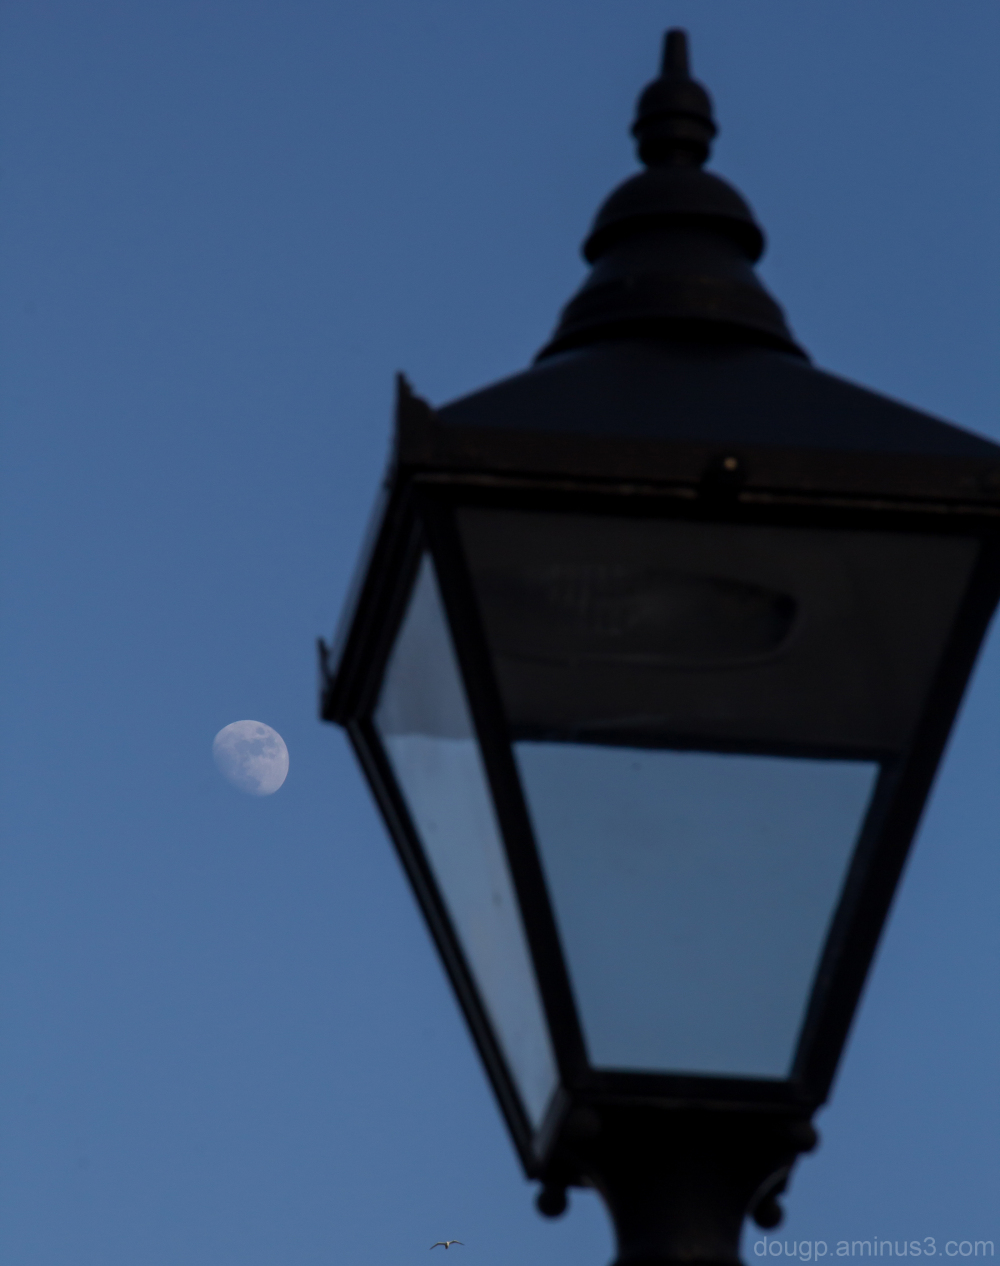 The moon and the light